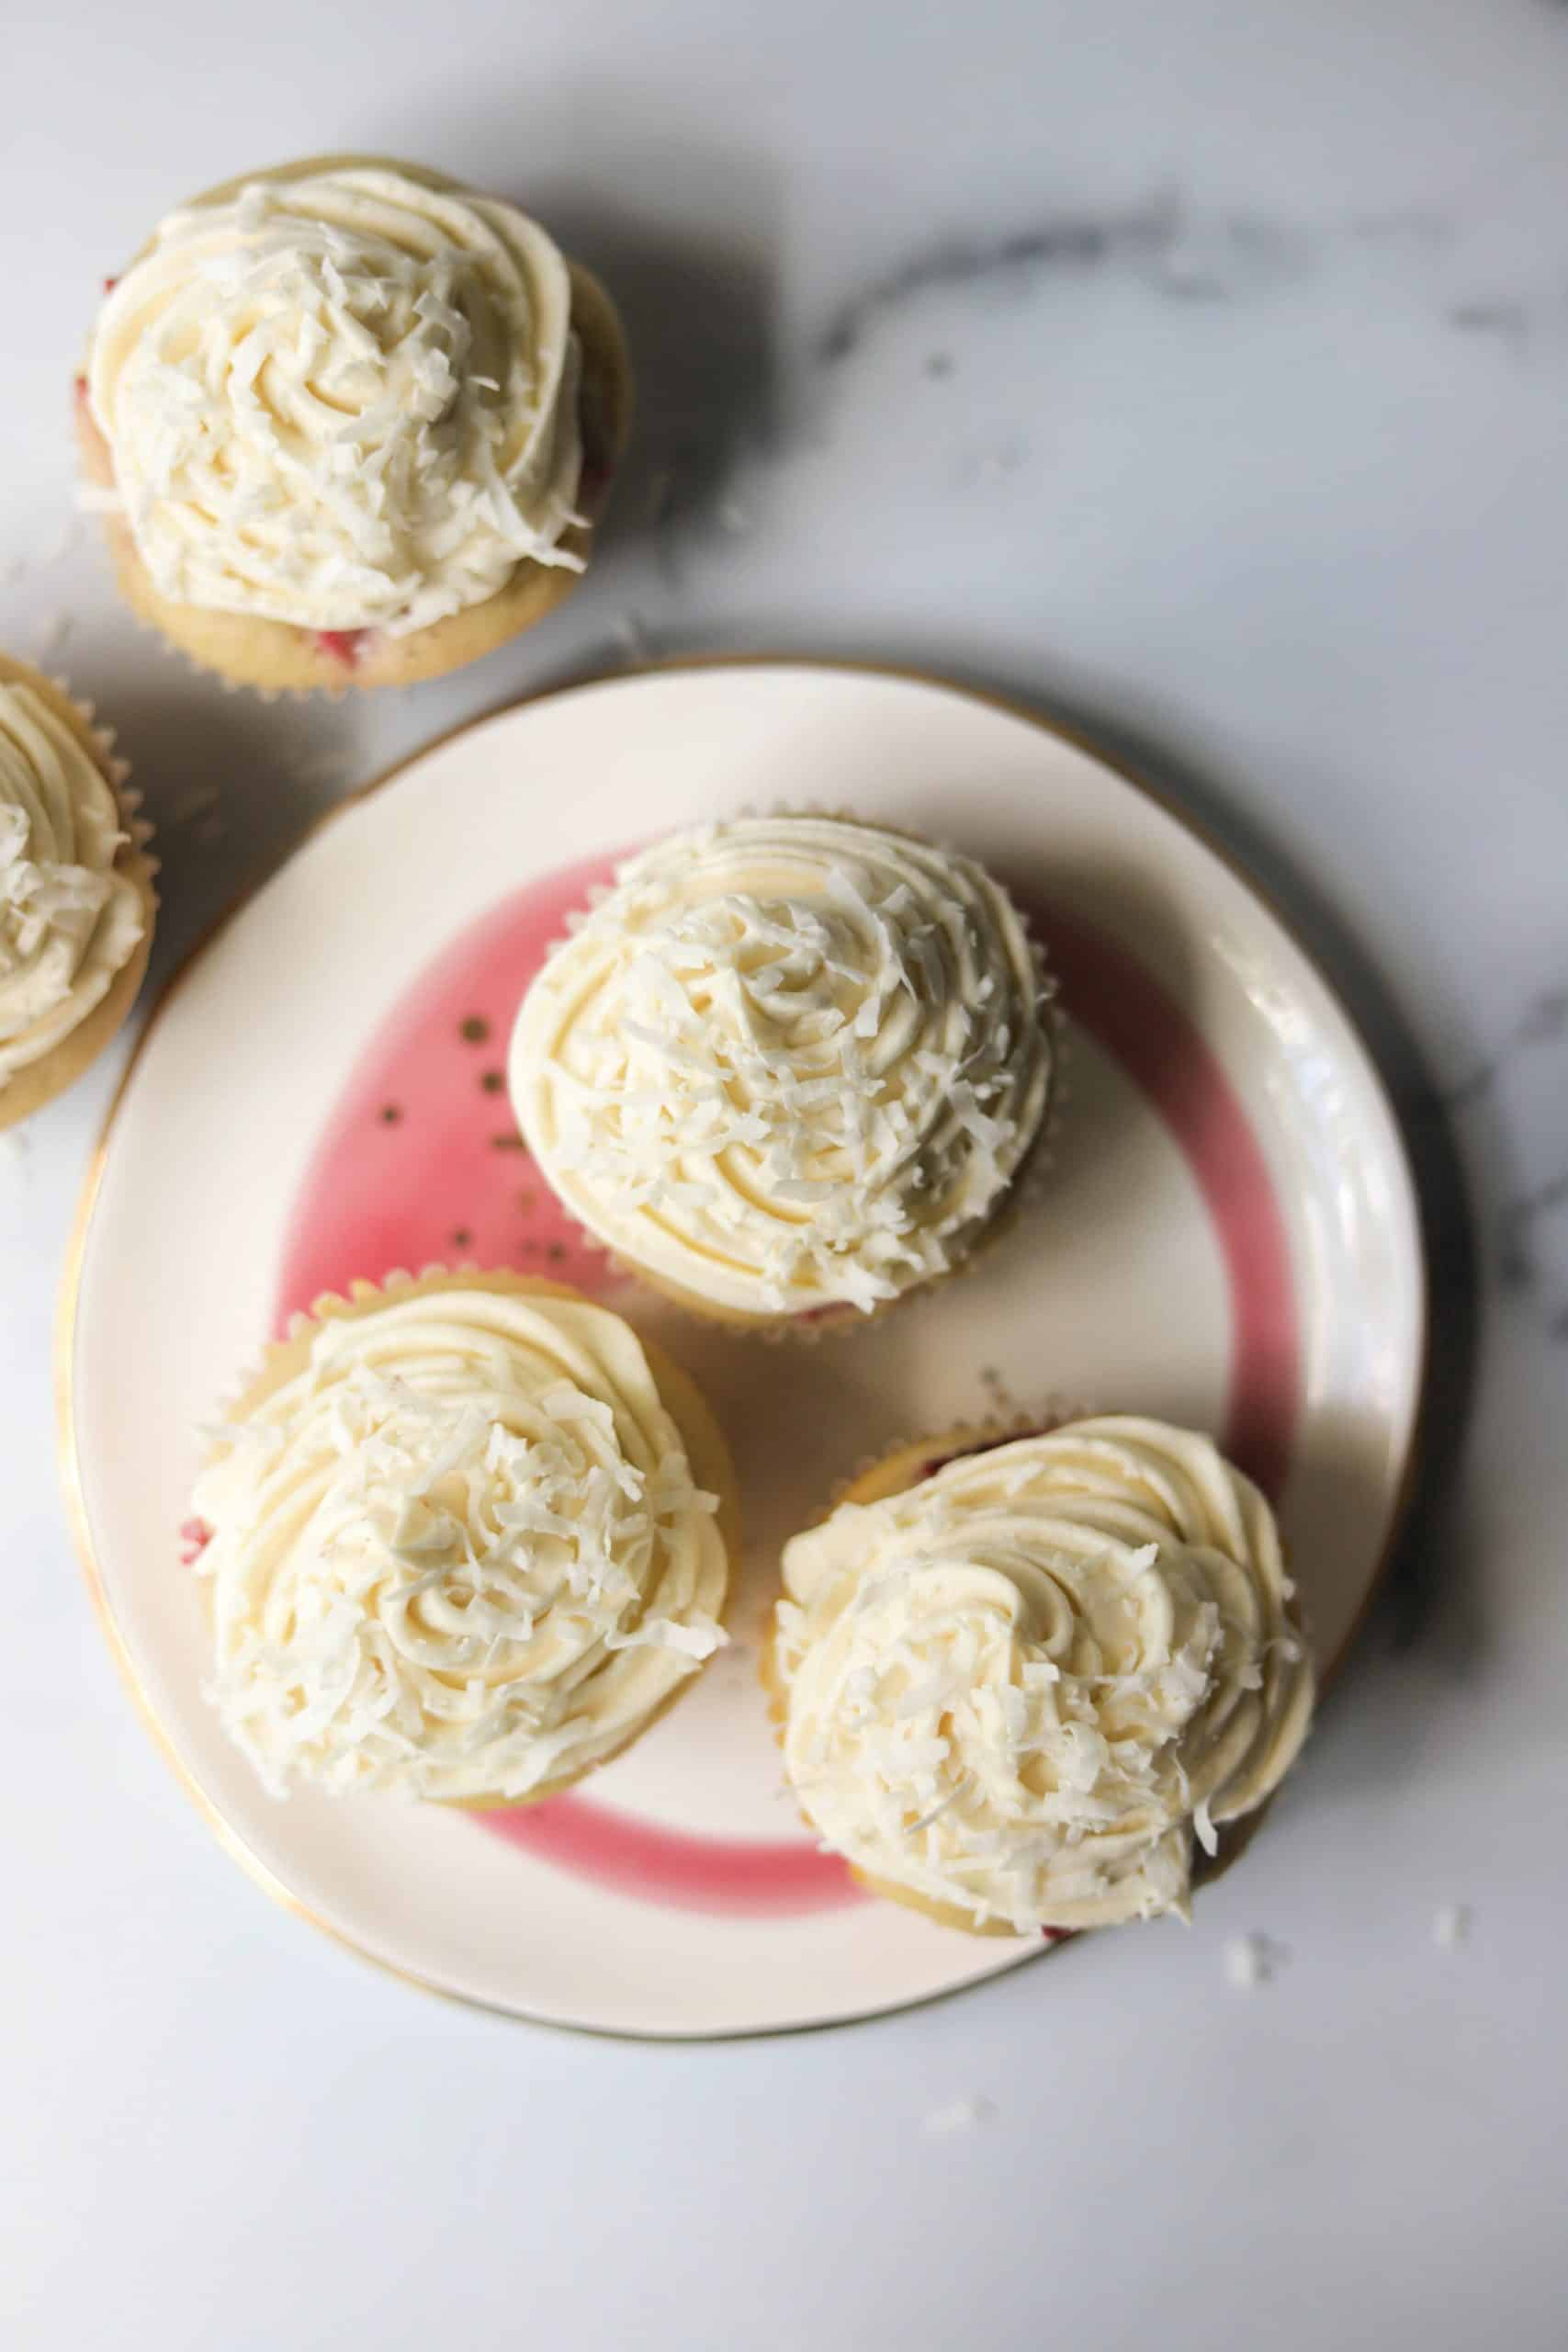 A birds eye view of a plate with 3 strawberry rhubarb cupcakes with 2 additional cupcakes on the side on a marble board.